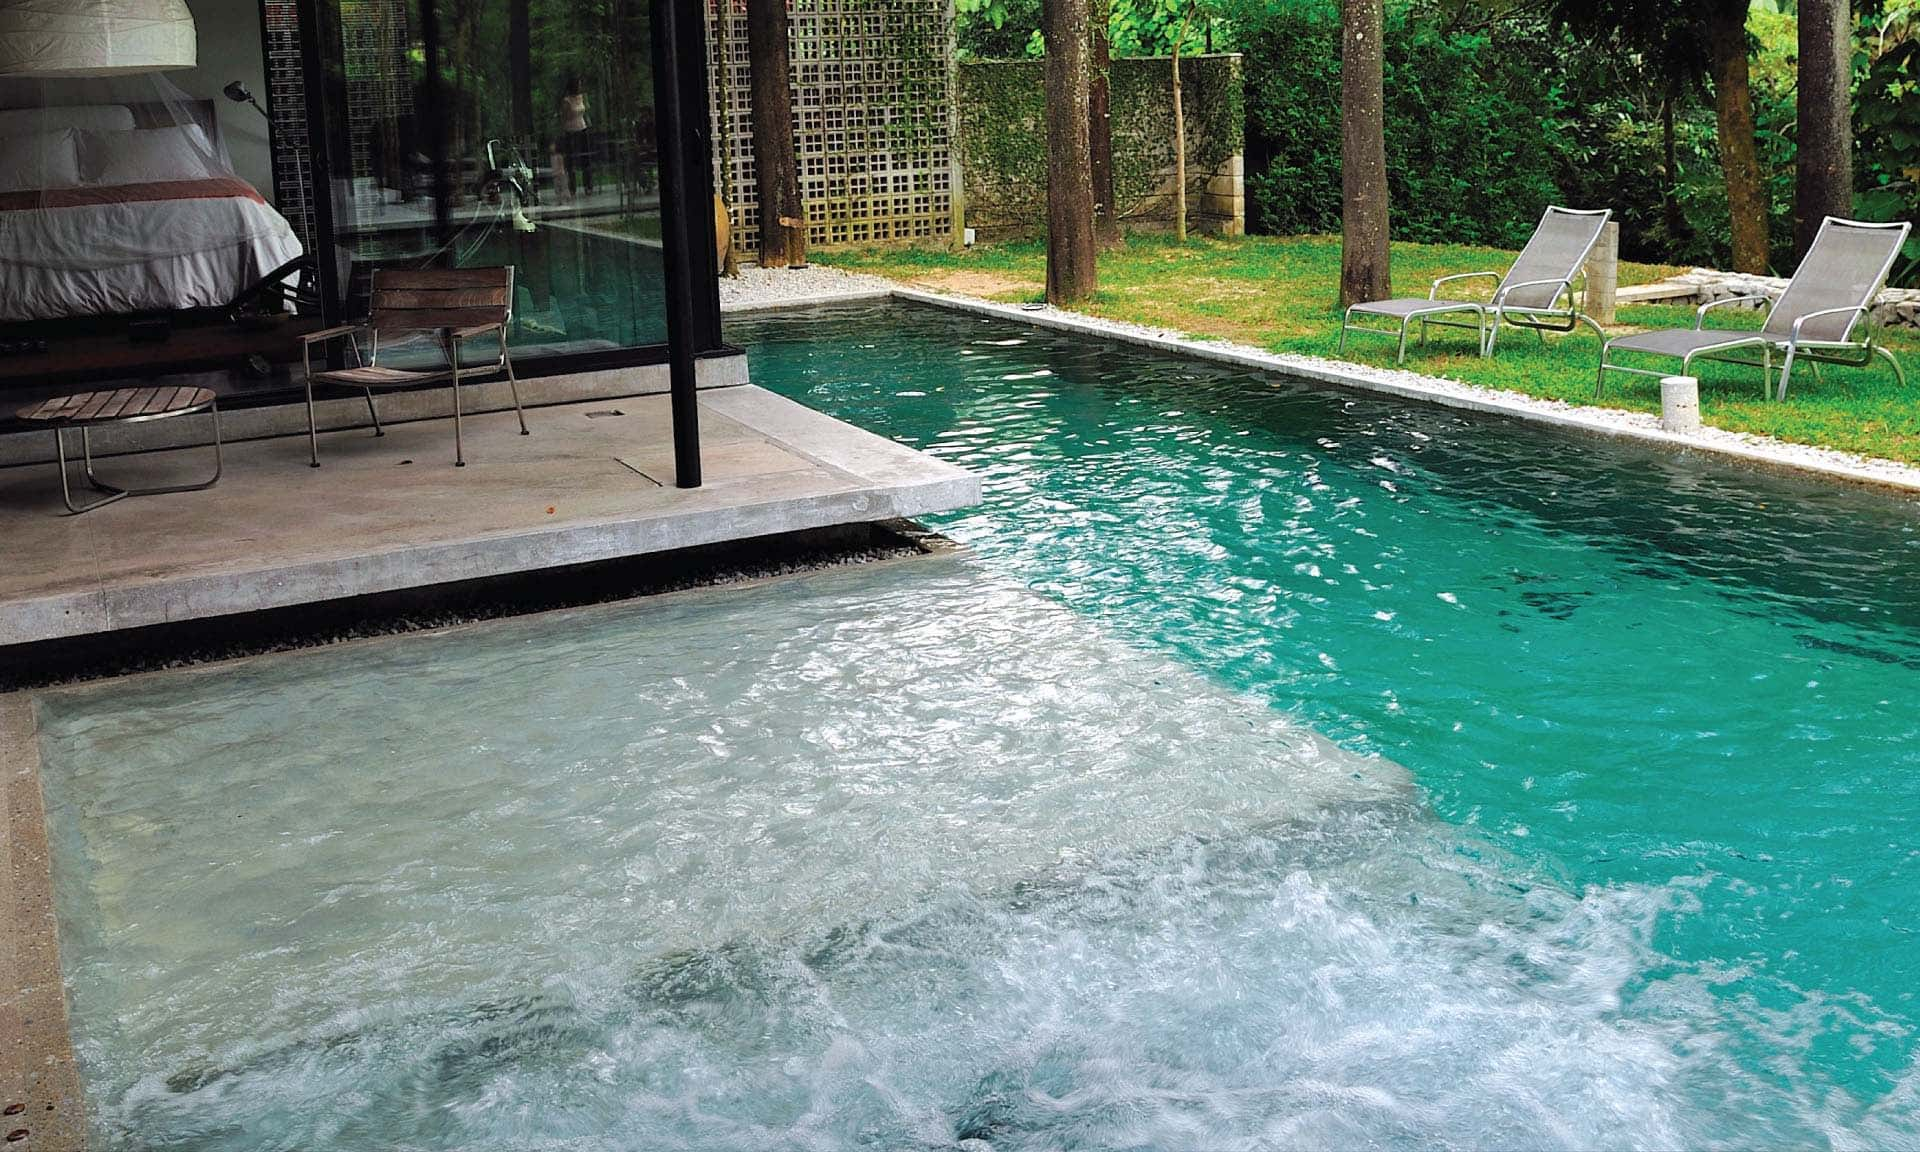 Design Built Home Commercial Pool Spa Fountain Specialist Swimming Pool Specialist Swimming Pool Contractor Swimming Pool Builder Malaysia Swimming Pool Equipment Supplier Synchronized Fountain